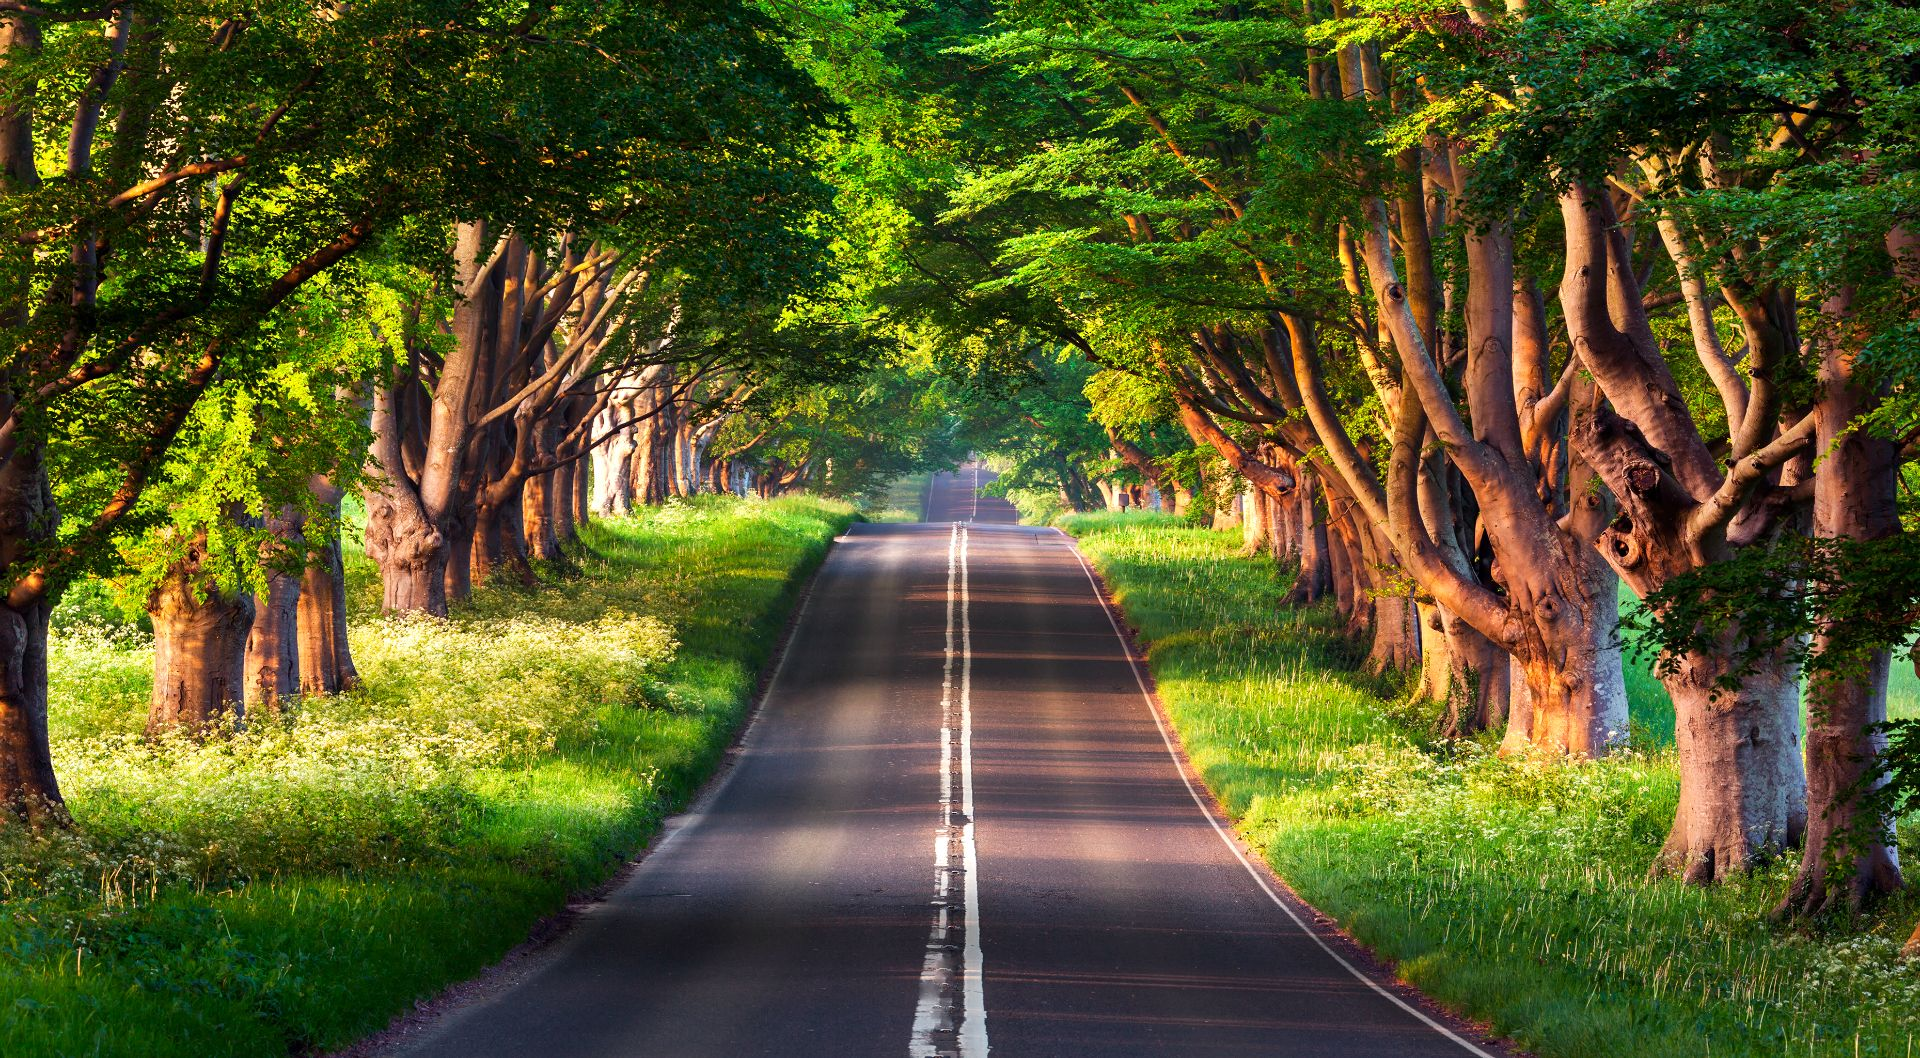 200 Srk Hd Backgrounds Download Now Background Nature Road Portrait Blur In 2020 Blur Photo Background Love Background Images Blur Background Photography